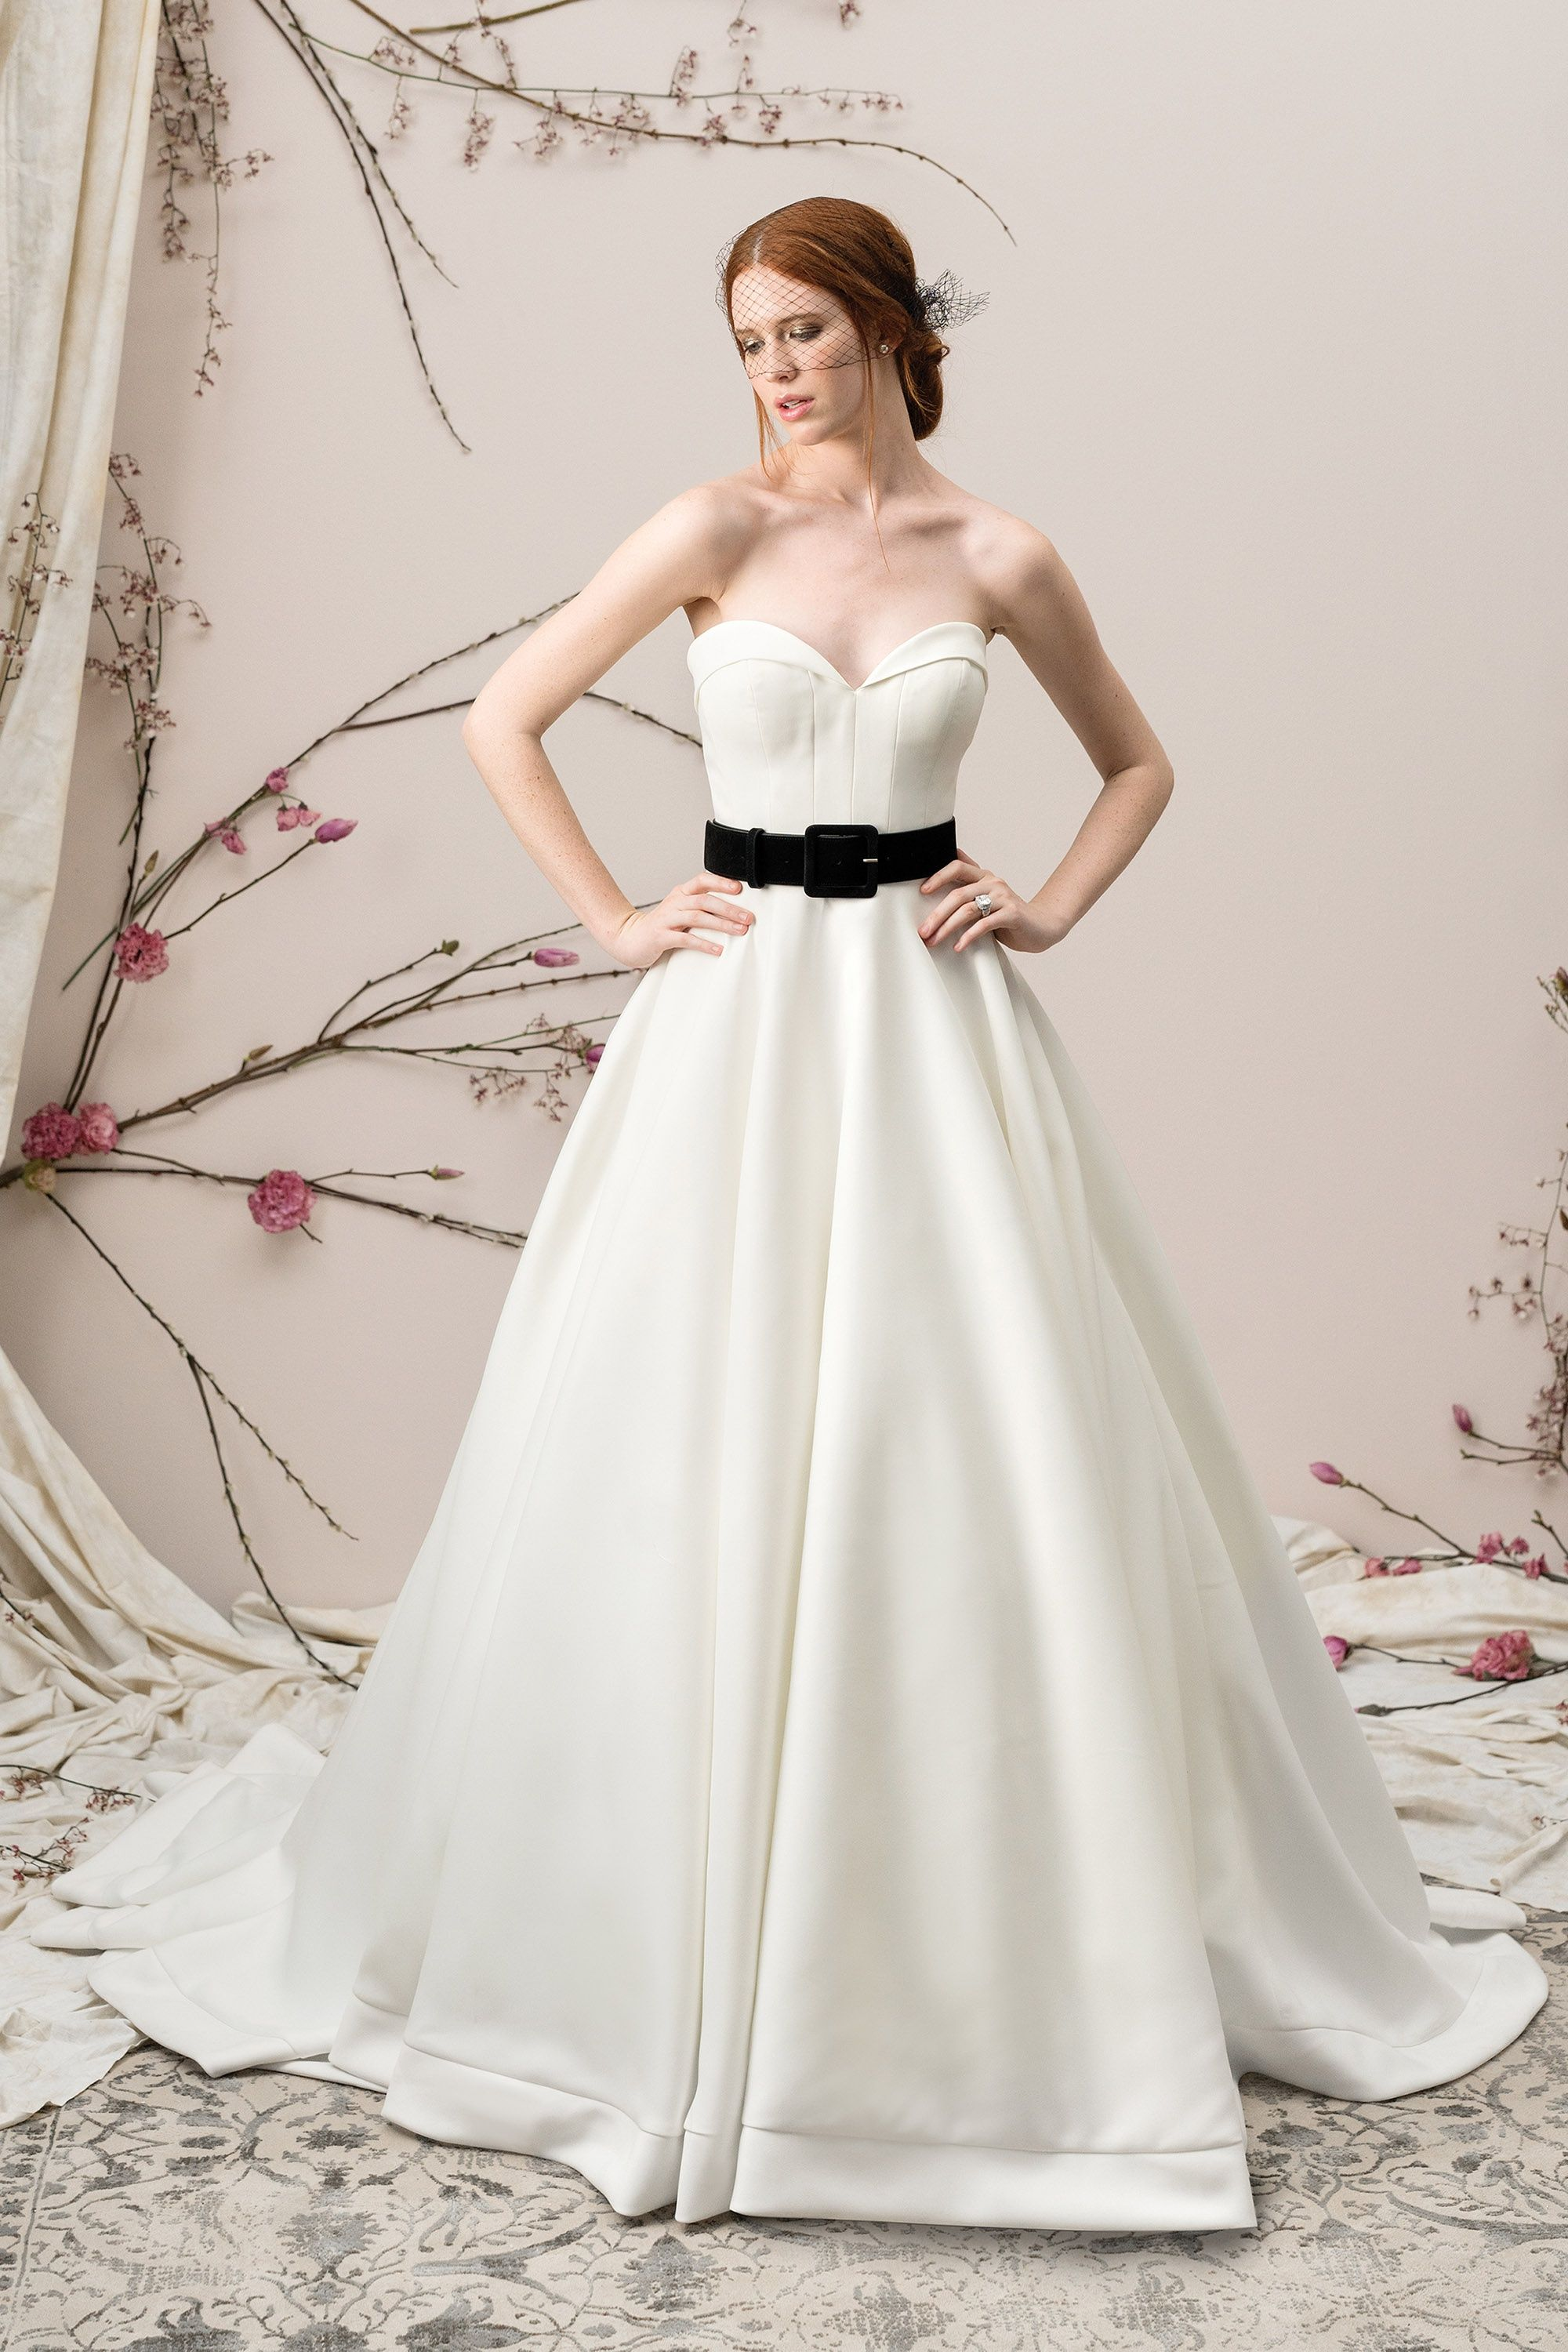 Justin Alexander Signature 9904 Ivory Black Size 12 Satin Ball Gown with  Folded Collar Sweetheart Neckline 6a0c4814f31e